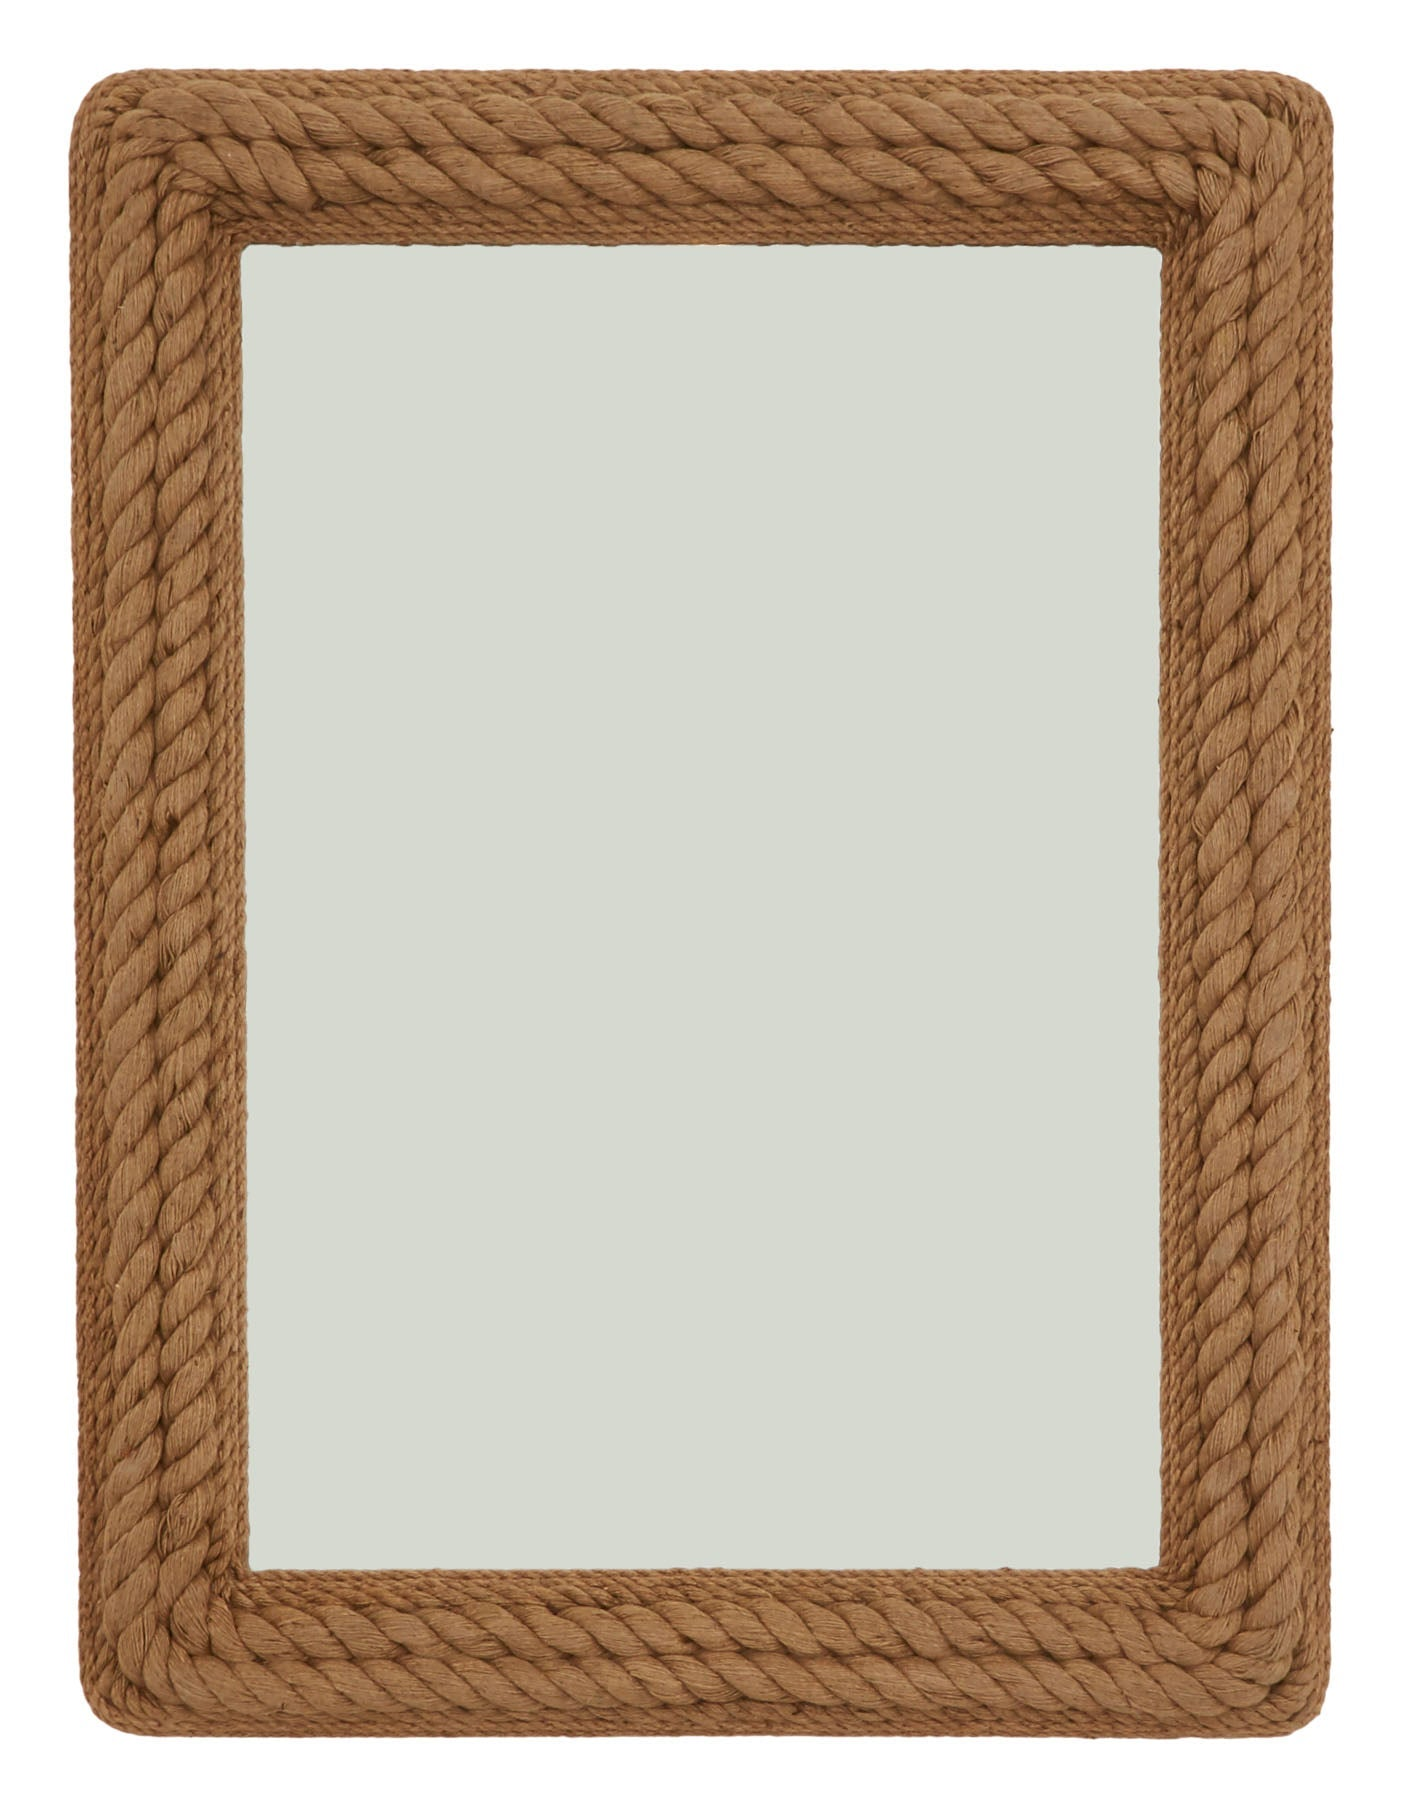 Halifax Rectangular Mirror